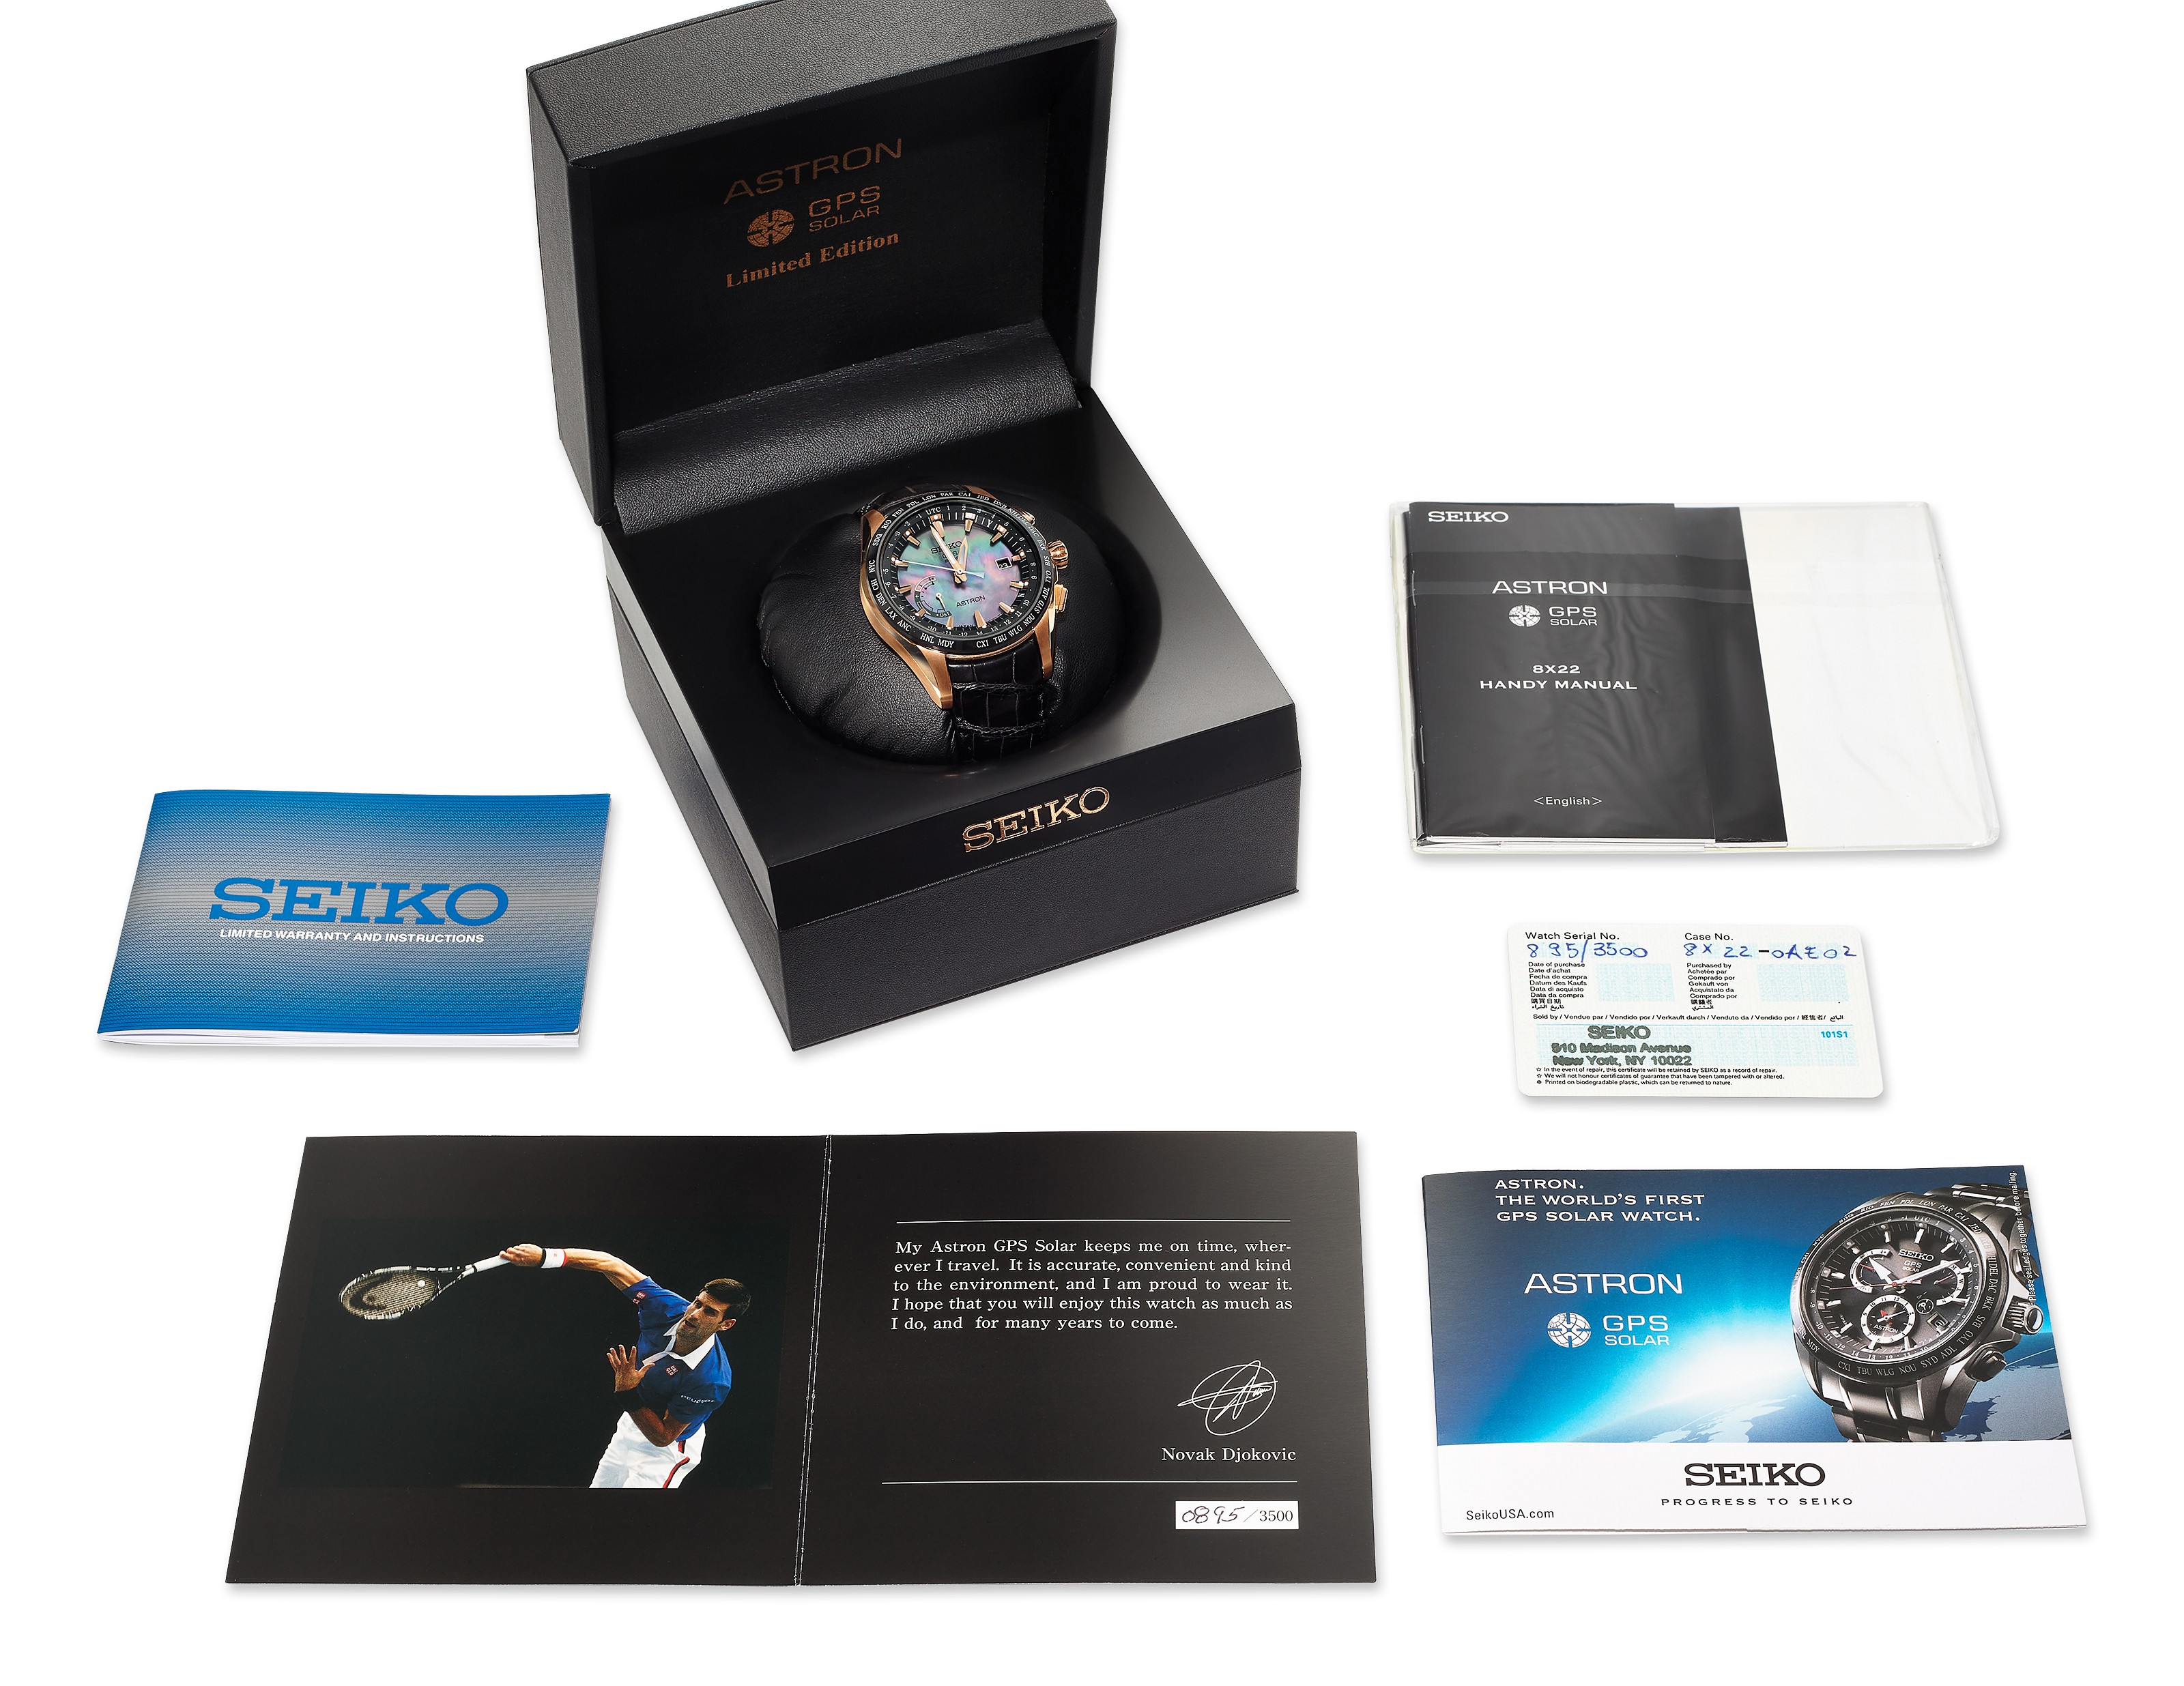 NOVAK DJOKOVIC FOUNDATION LOT - SIGNED HEAD TENNIS RACKET AND LIMITED EDITION SEIKO ASTRON GPS SOLAR WATCH